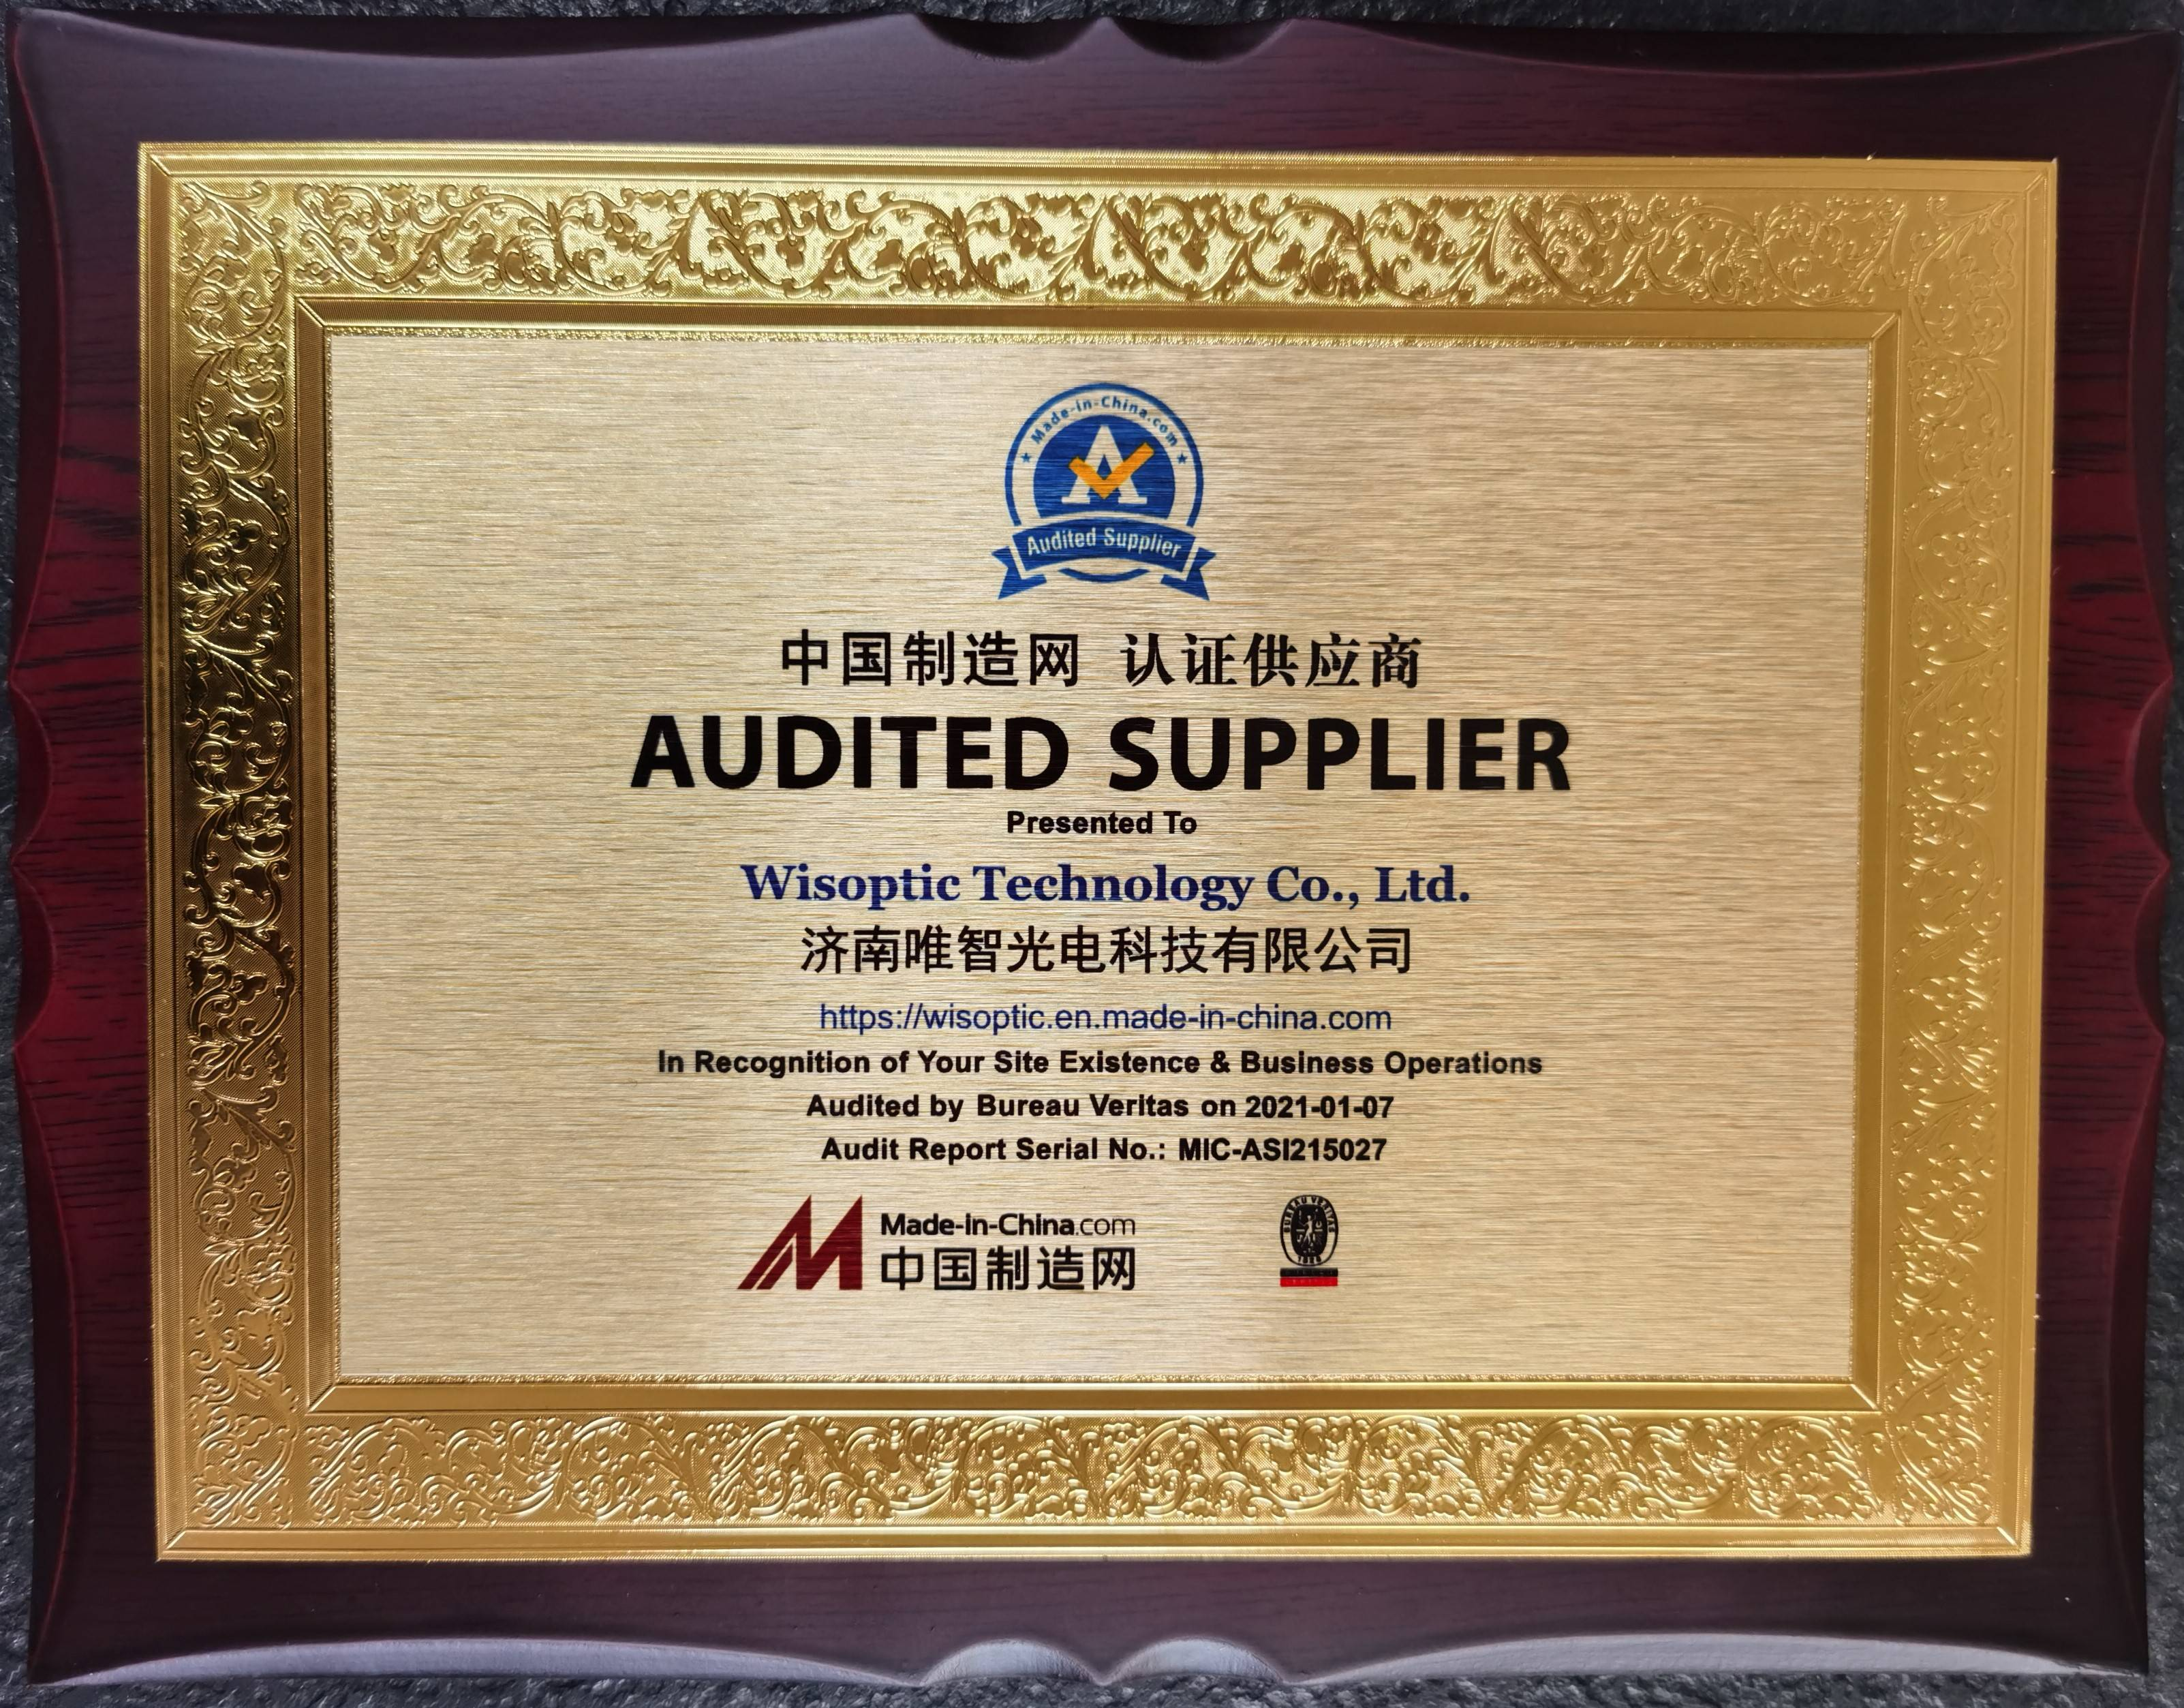 WISOPTIC has been recognized as qualified supplier of Made-in-China.com